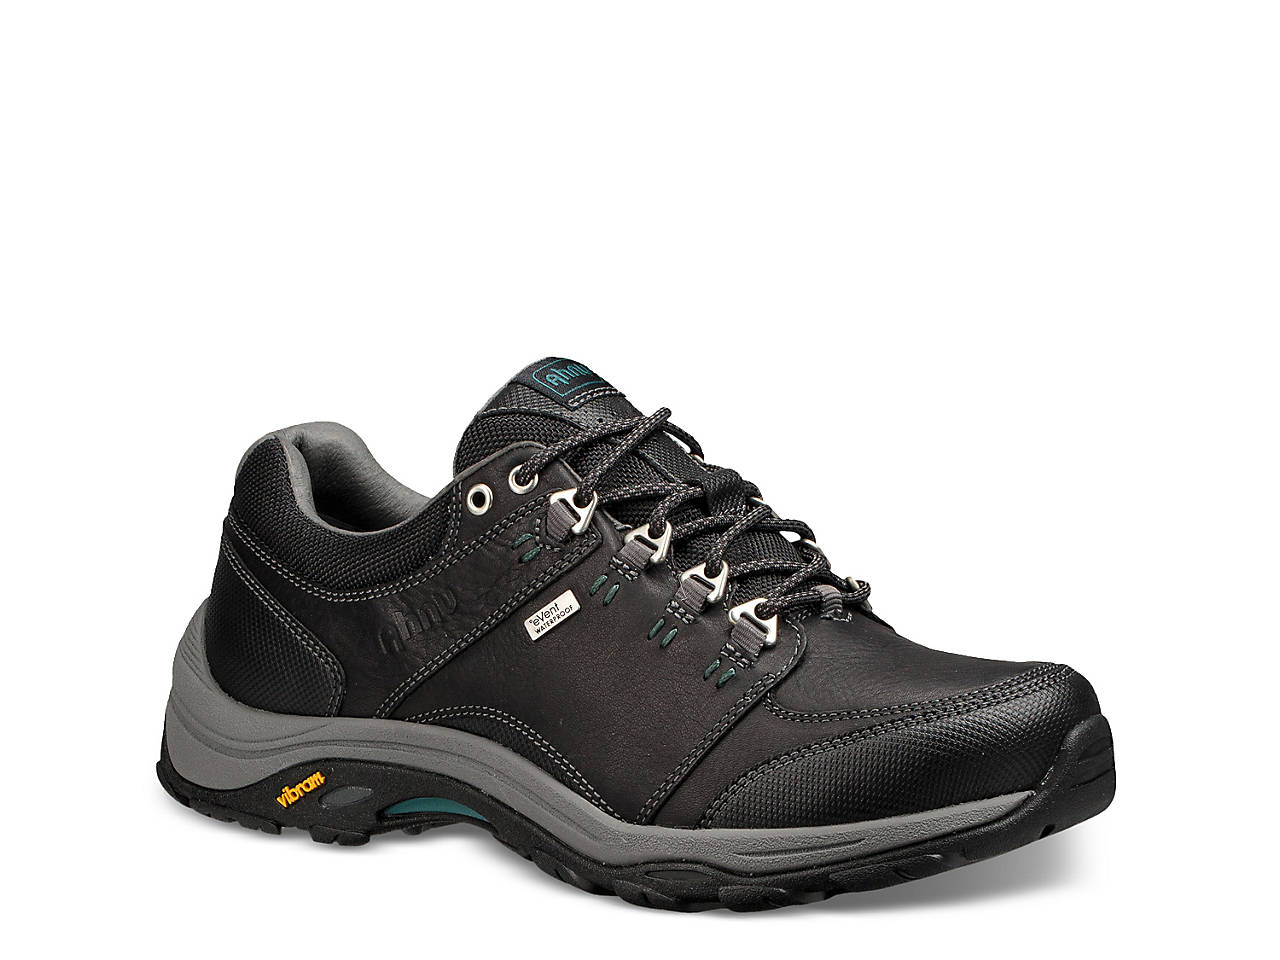 925dd4c40d904e Teva Montara III Hiking Shoe Women s Shoes